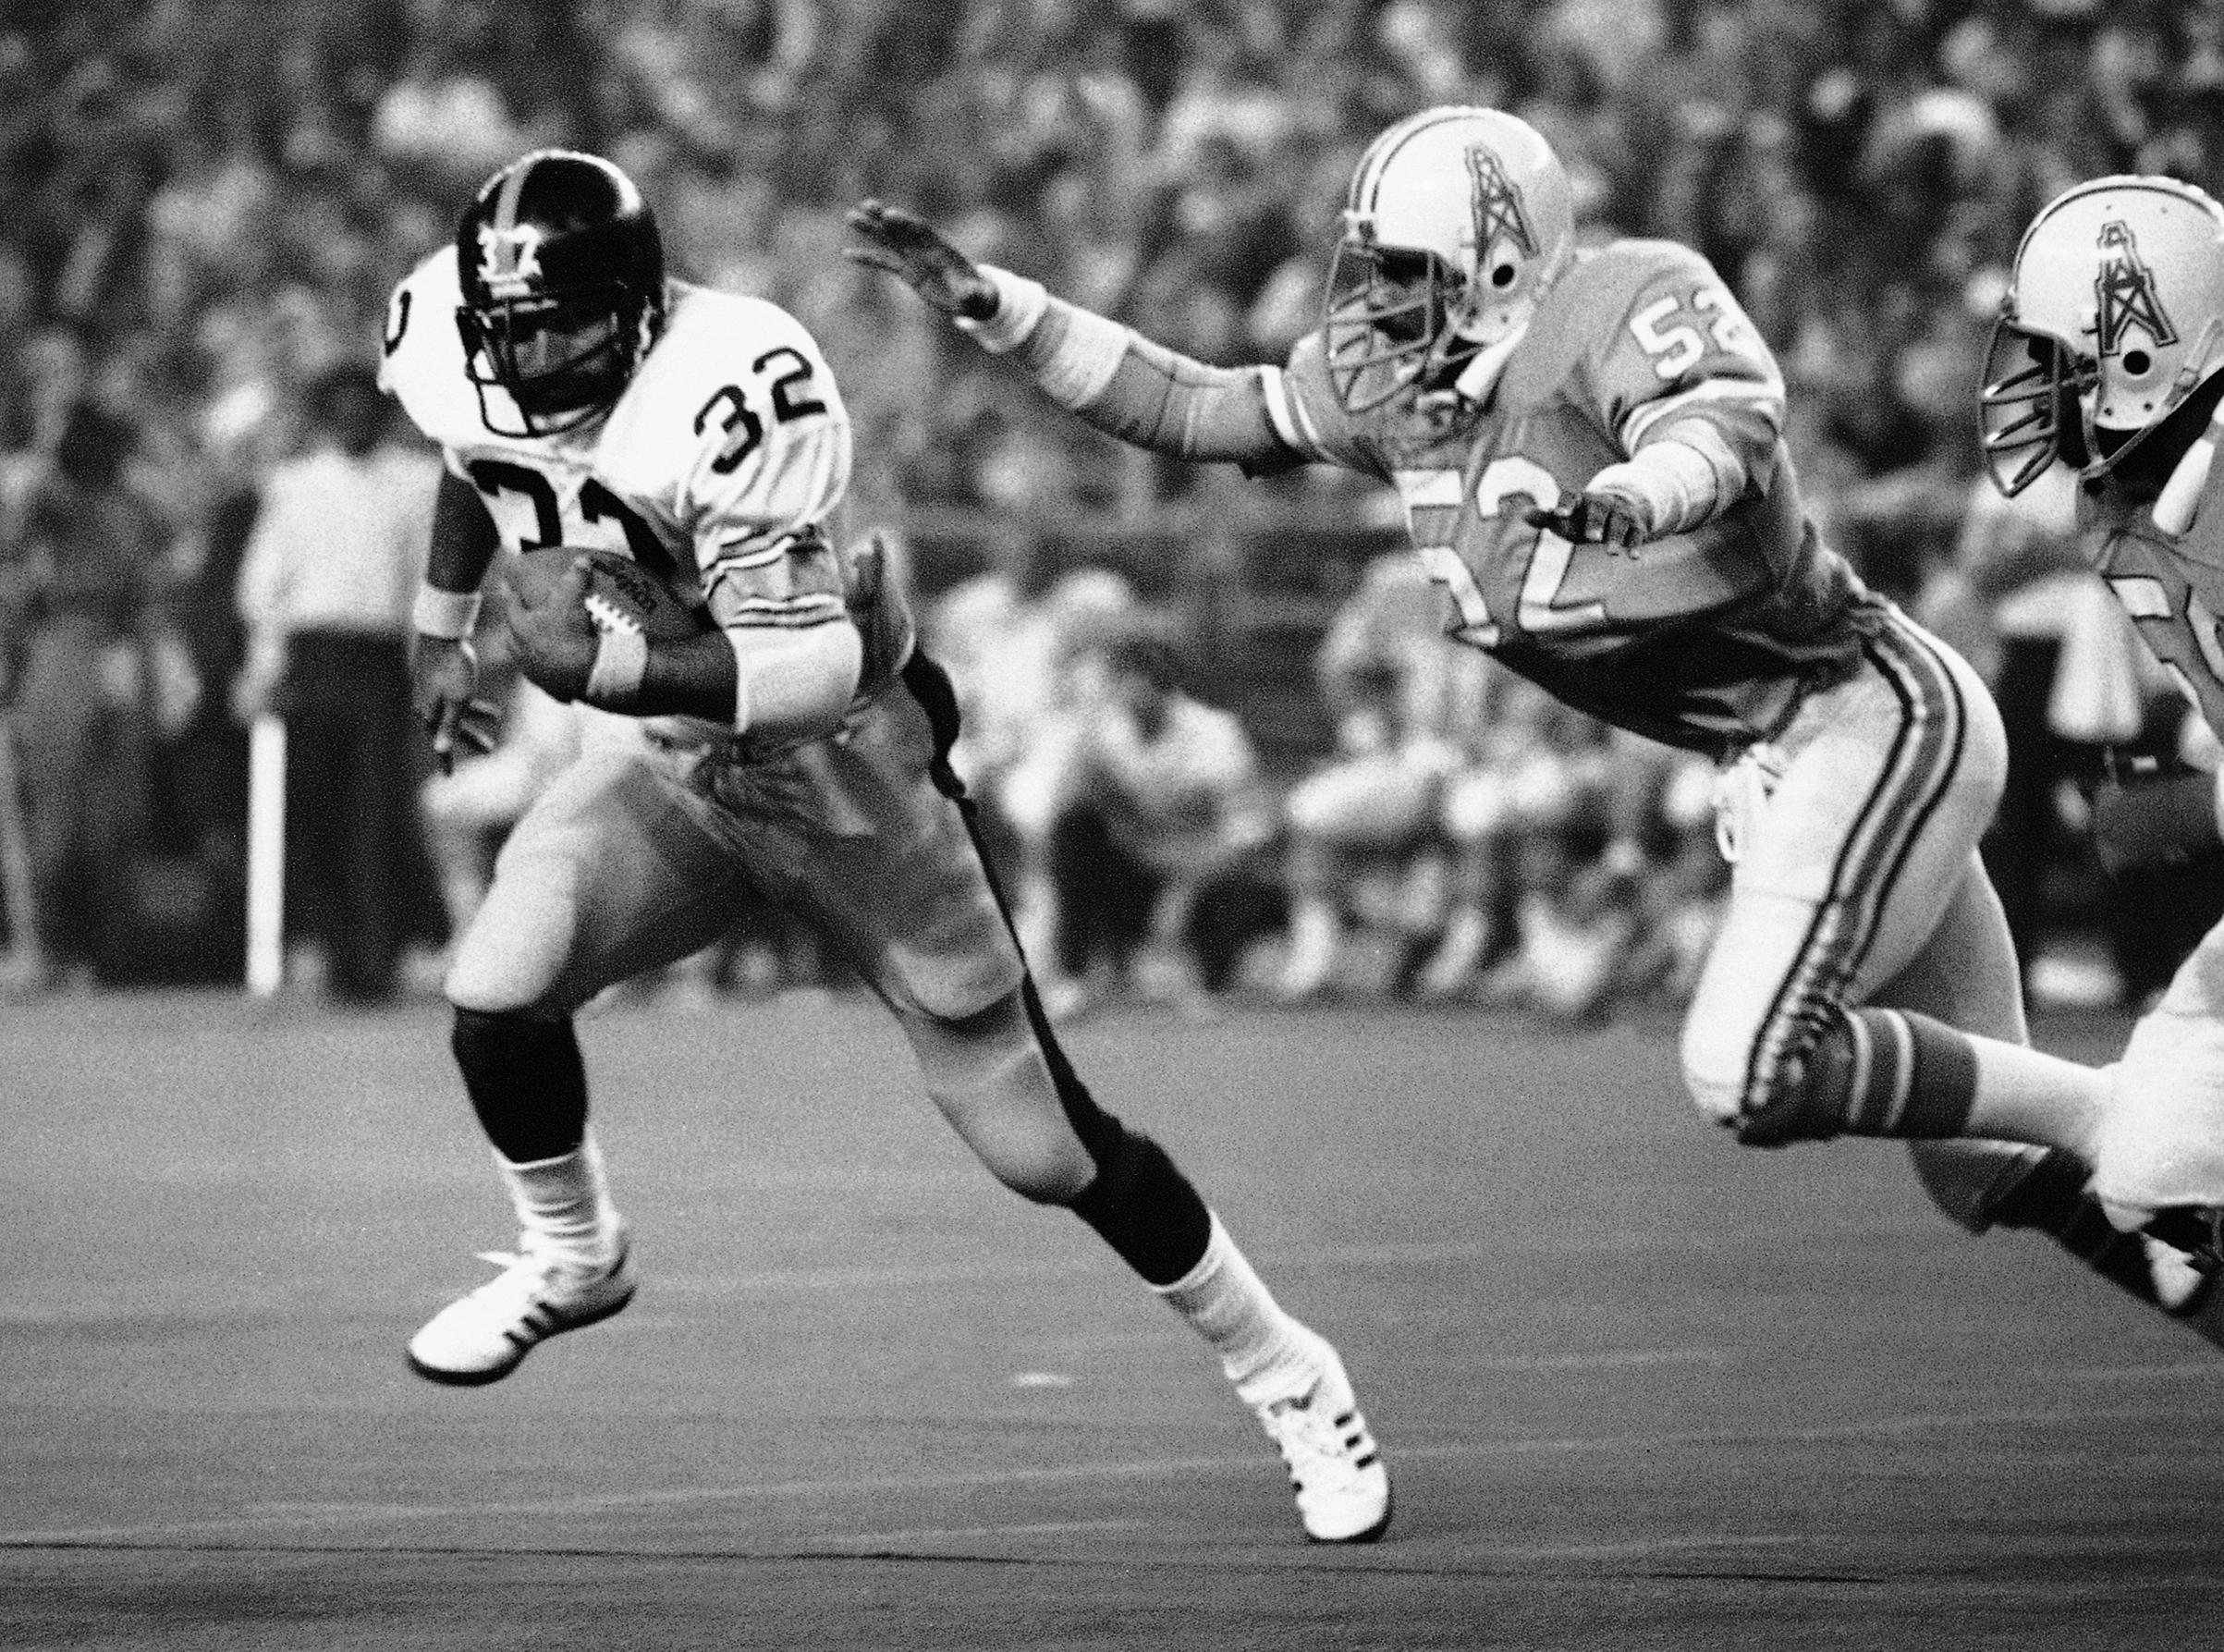 FILE - In this Dec. 3, 1978, file photo, Pittsburgh Steelers running back Franco Harris (32) picks up 10 yards as he turns the corner as Houston Oilers' Robert Brazile (52) makes a dive to latch on to Harris to make the stop, during an NFL football game in Houston. Brazile was elected to the Pro Football Hall of Fame on Saturday, Feb. 3, 2018. (AP Photo/Ed Kolenovsky, File)